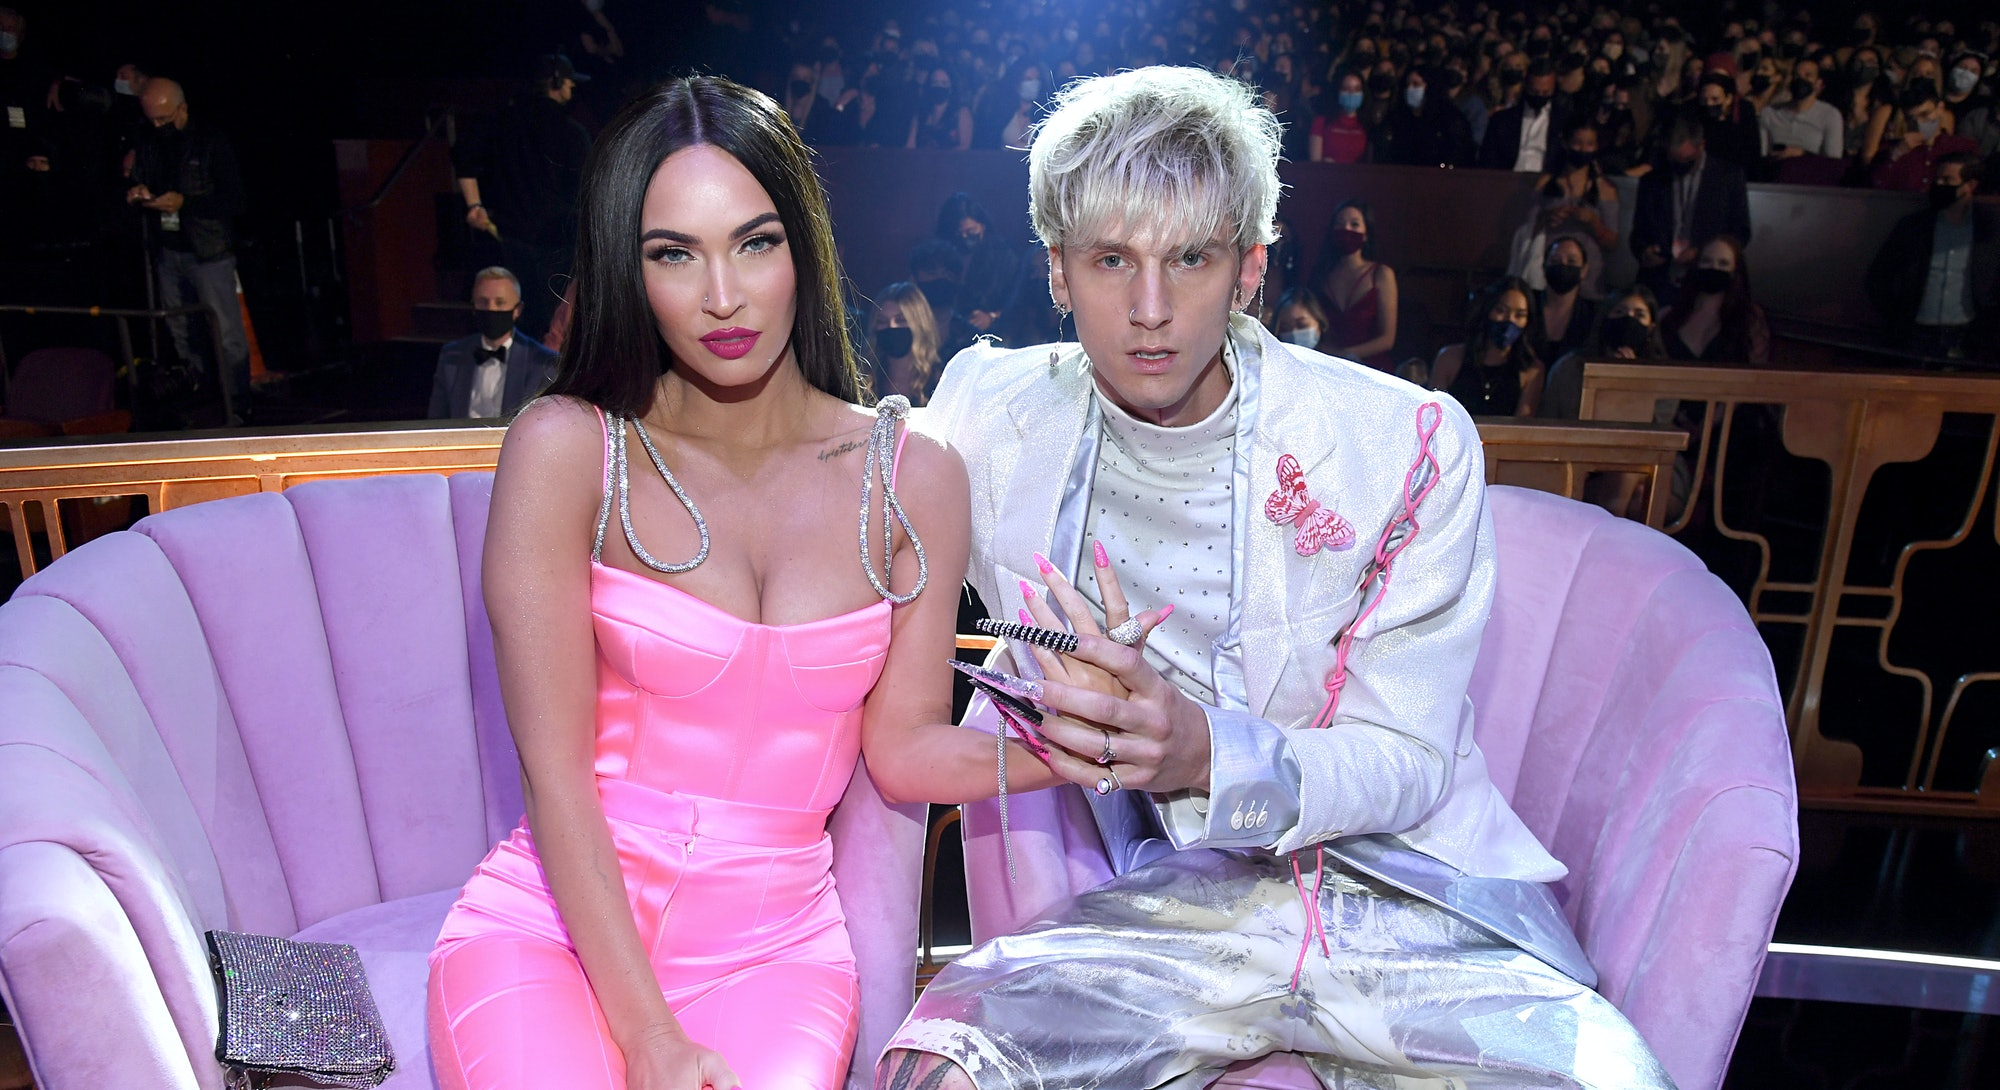 LOS ANGELES, CALIFORNIA - MAY 27: (EDITORIAL USE ONLY) (L-R) Megan Fox and Machine Gun Kelly attend ...